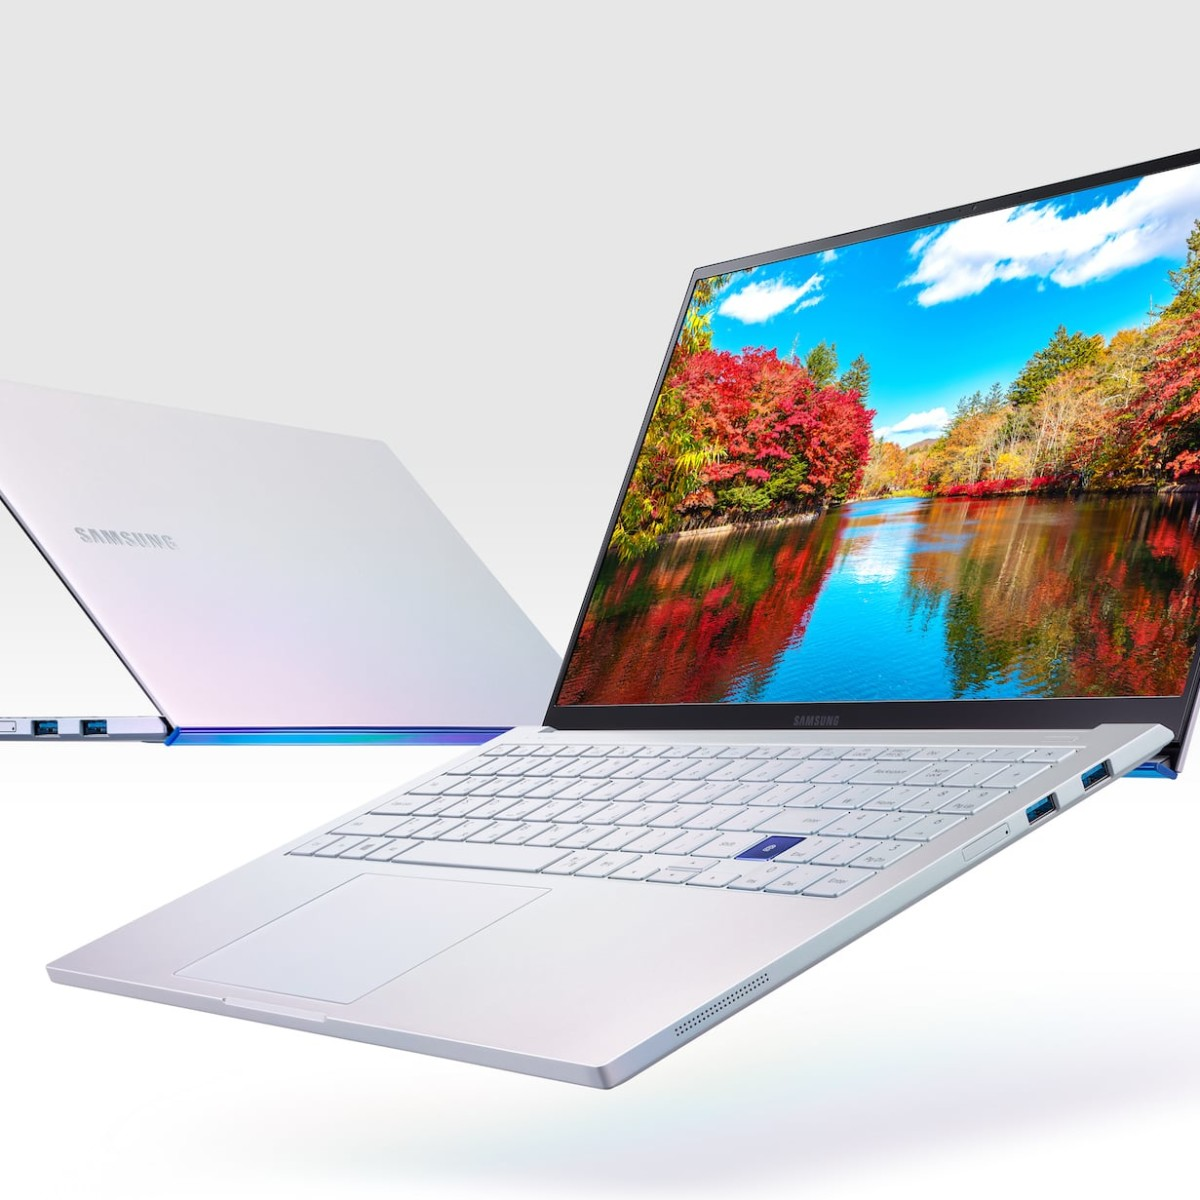 Samsung Galaxy Book Ion Magnesium Laptop weighs less than a kilo for easy portability